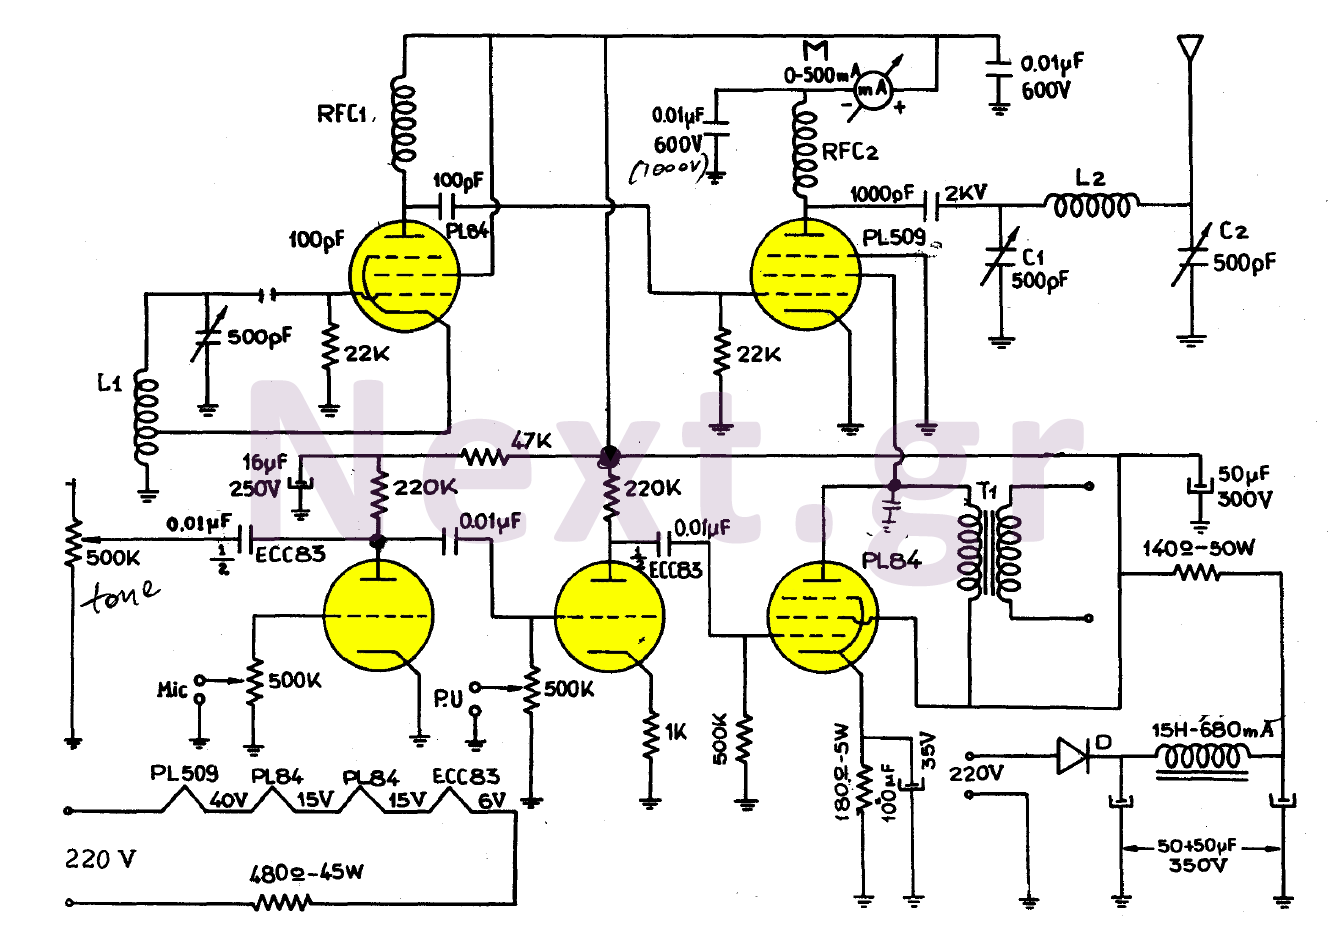 Simple Valve Mw Transmitter Circuit 30w Amplificadores Valvulas De Electronic Mosquito Repellent Diagram Using Ic 555